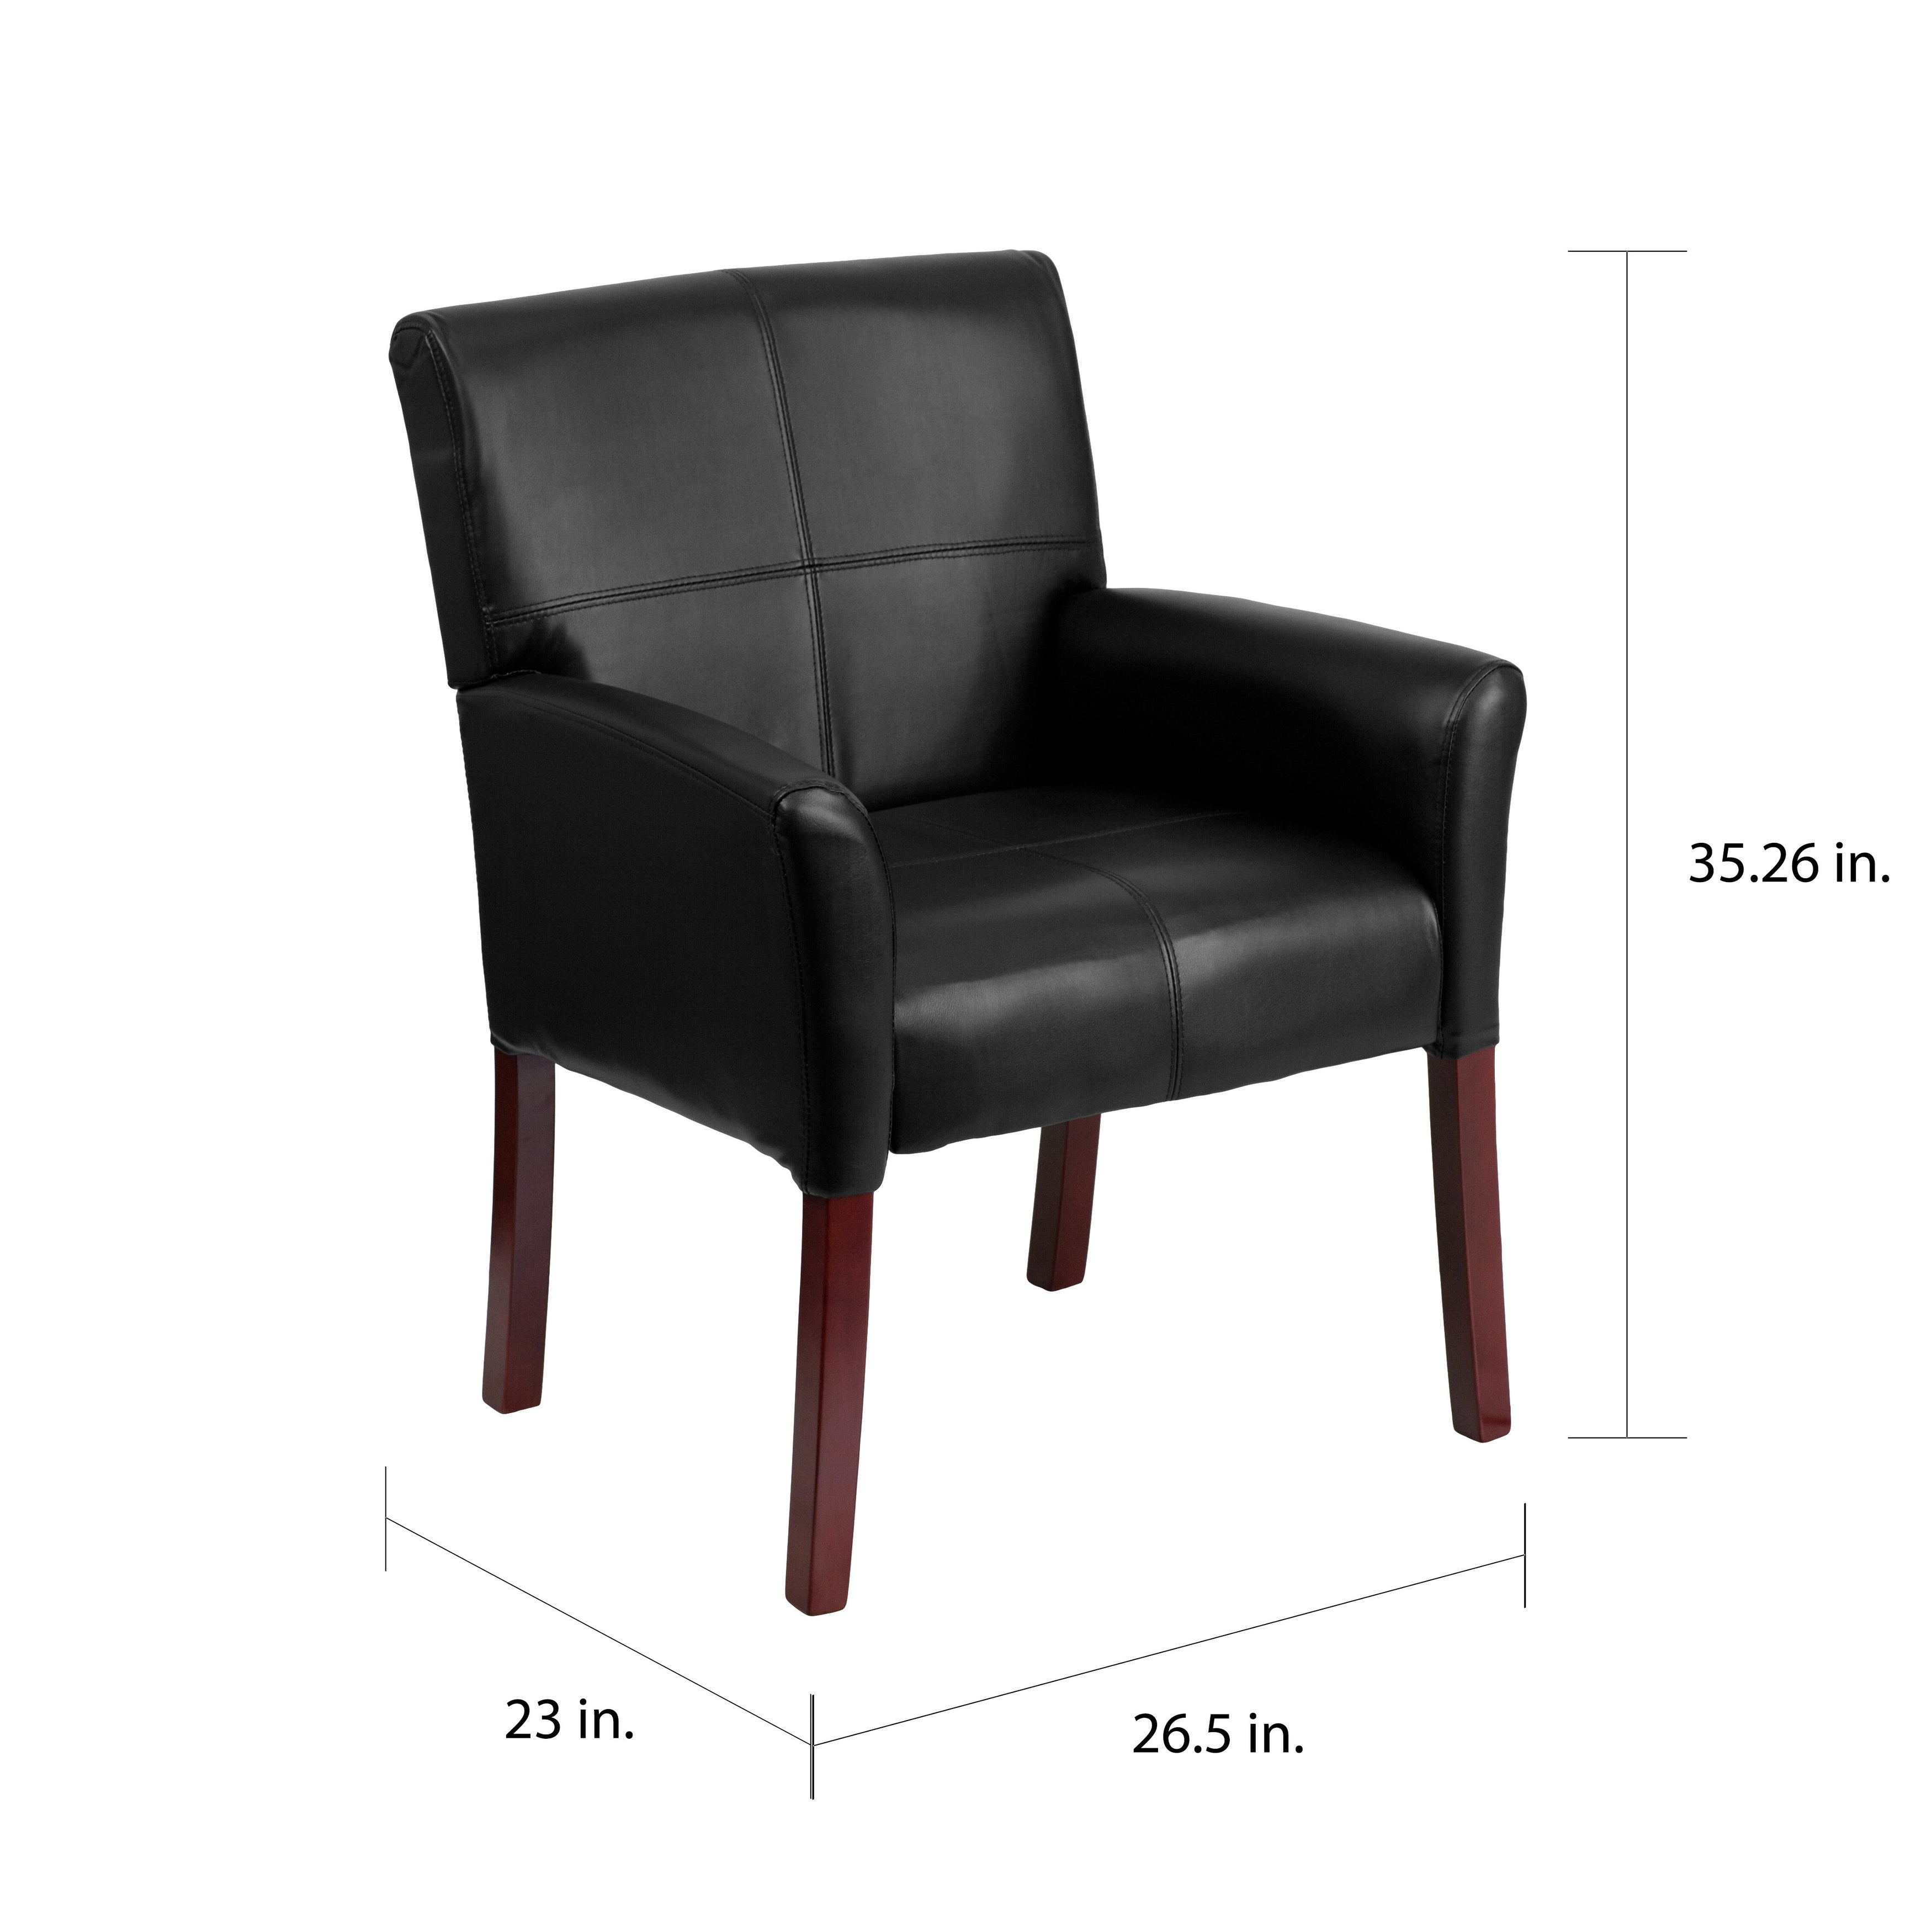 Astounding Copper Grove Neys Black Leather Executive Side Chair Reception Chair With Mahogany Legs Pdpeps Interior Chair Design Pdpepsorg